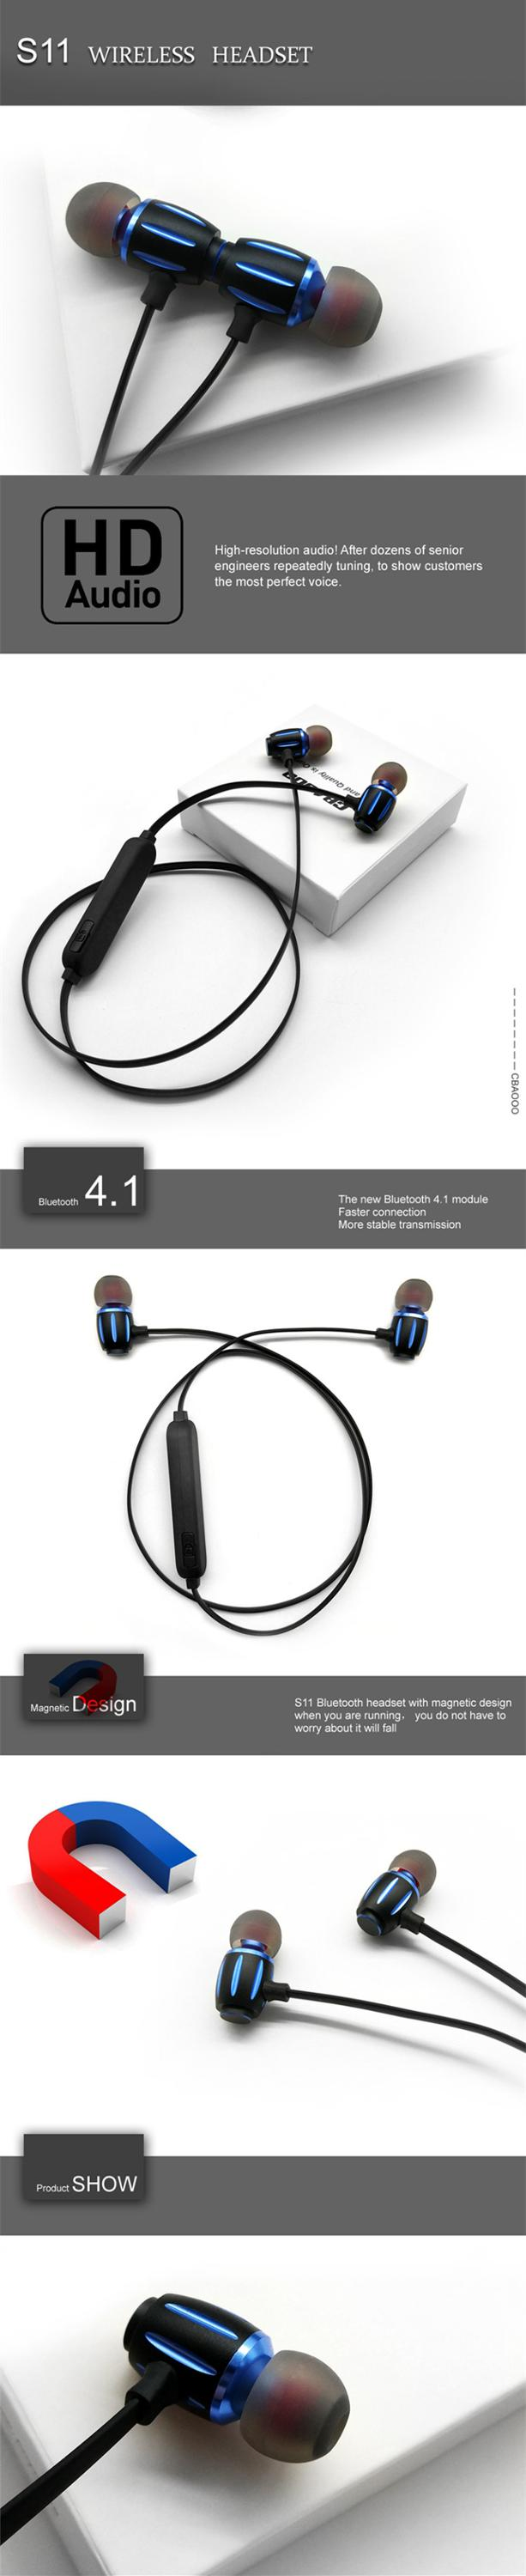 Maxshine 2018 best wireless blue tooth earphone headset blue tooth headphone with mic for mobile phone